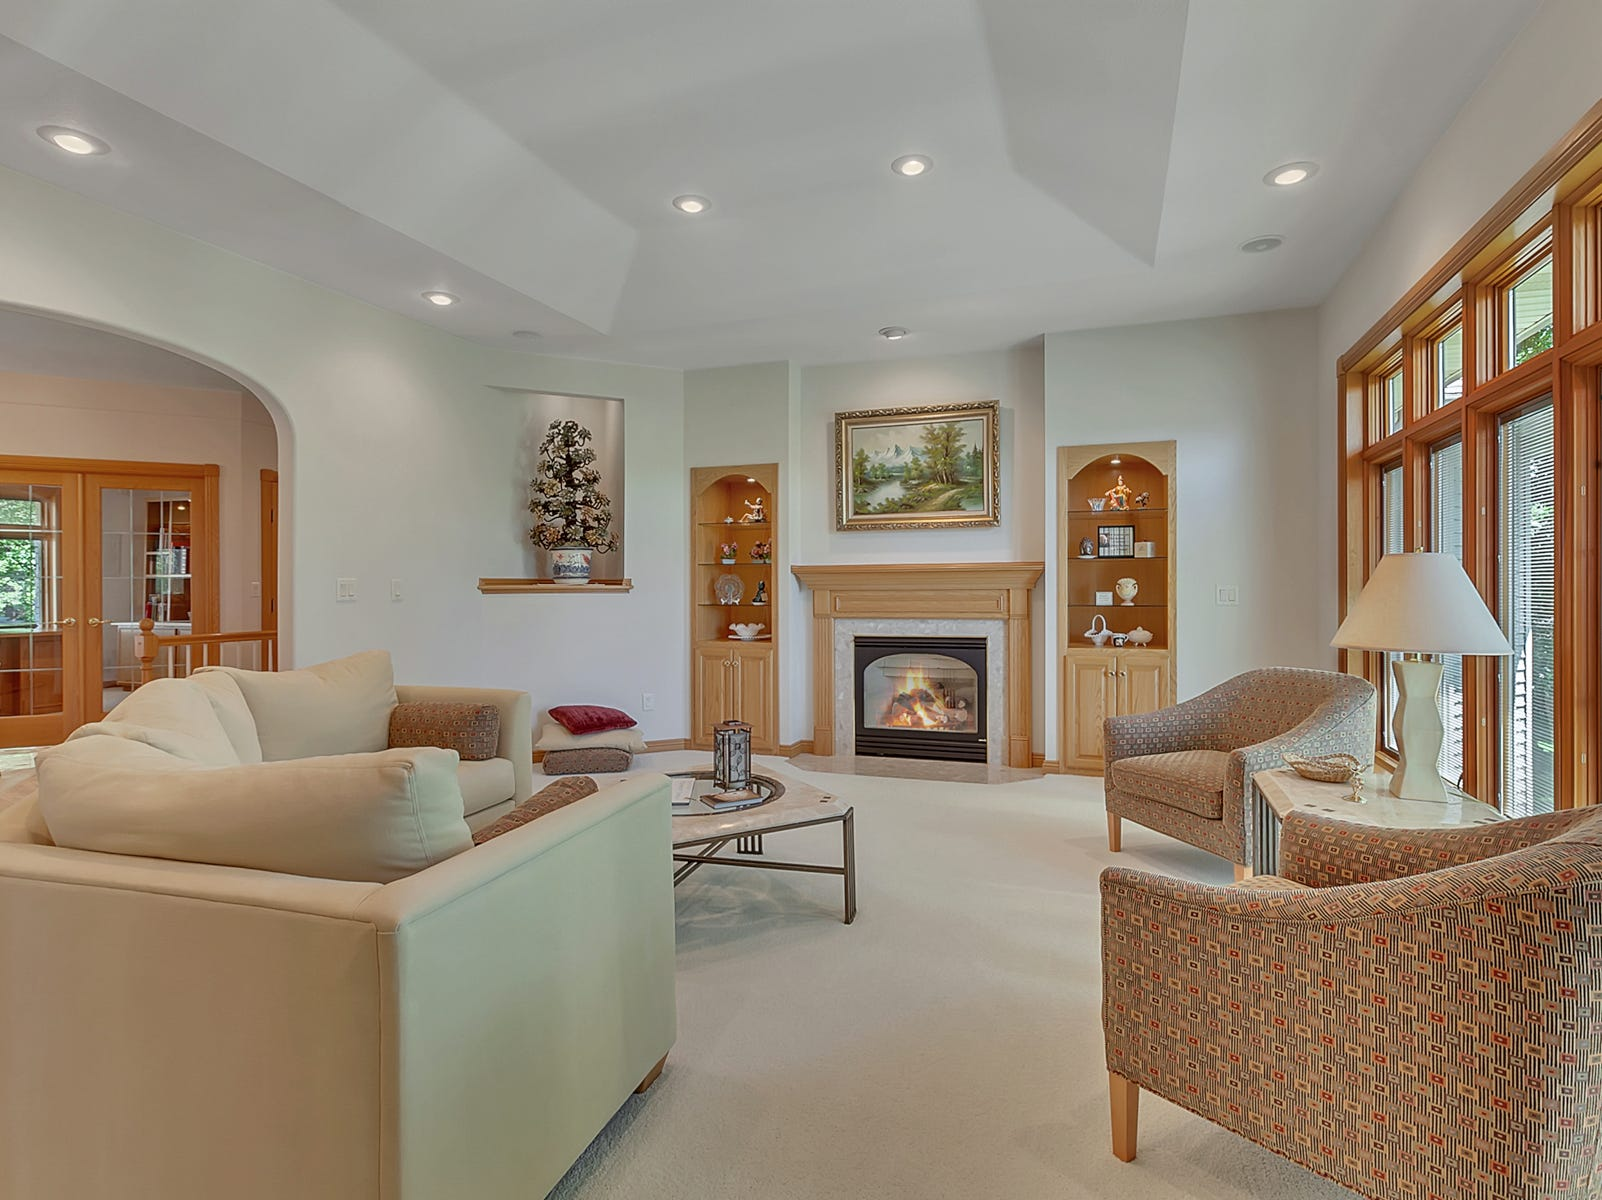 The living room, with its tray ceilings and four gorgeous archways framing its walls, is regal and inviting.